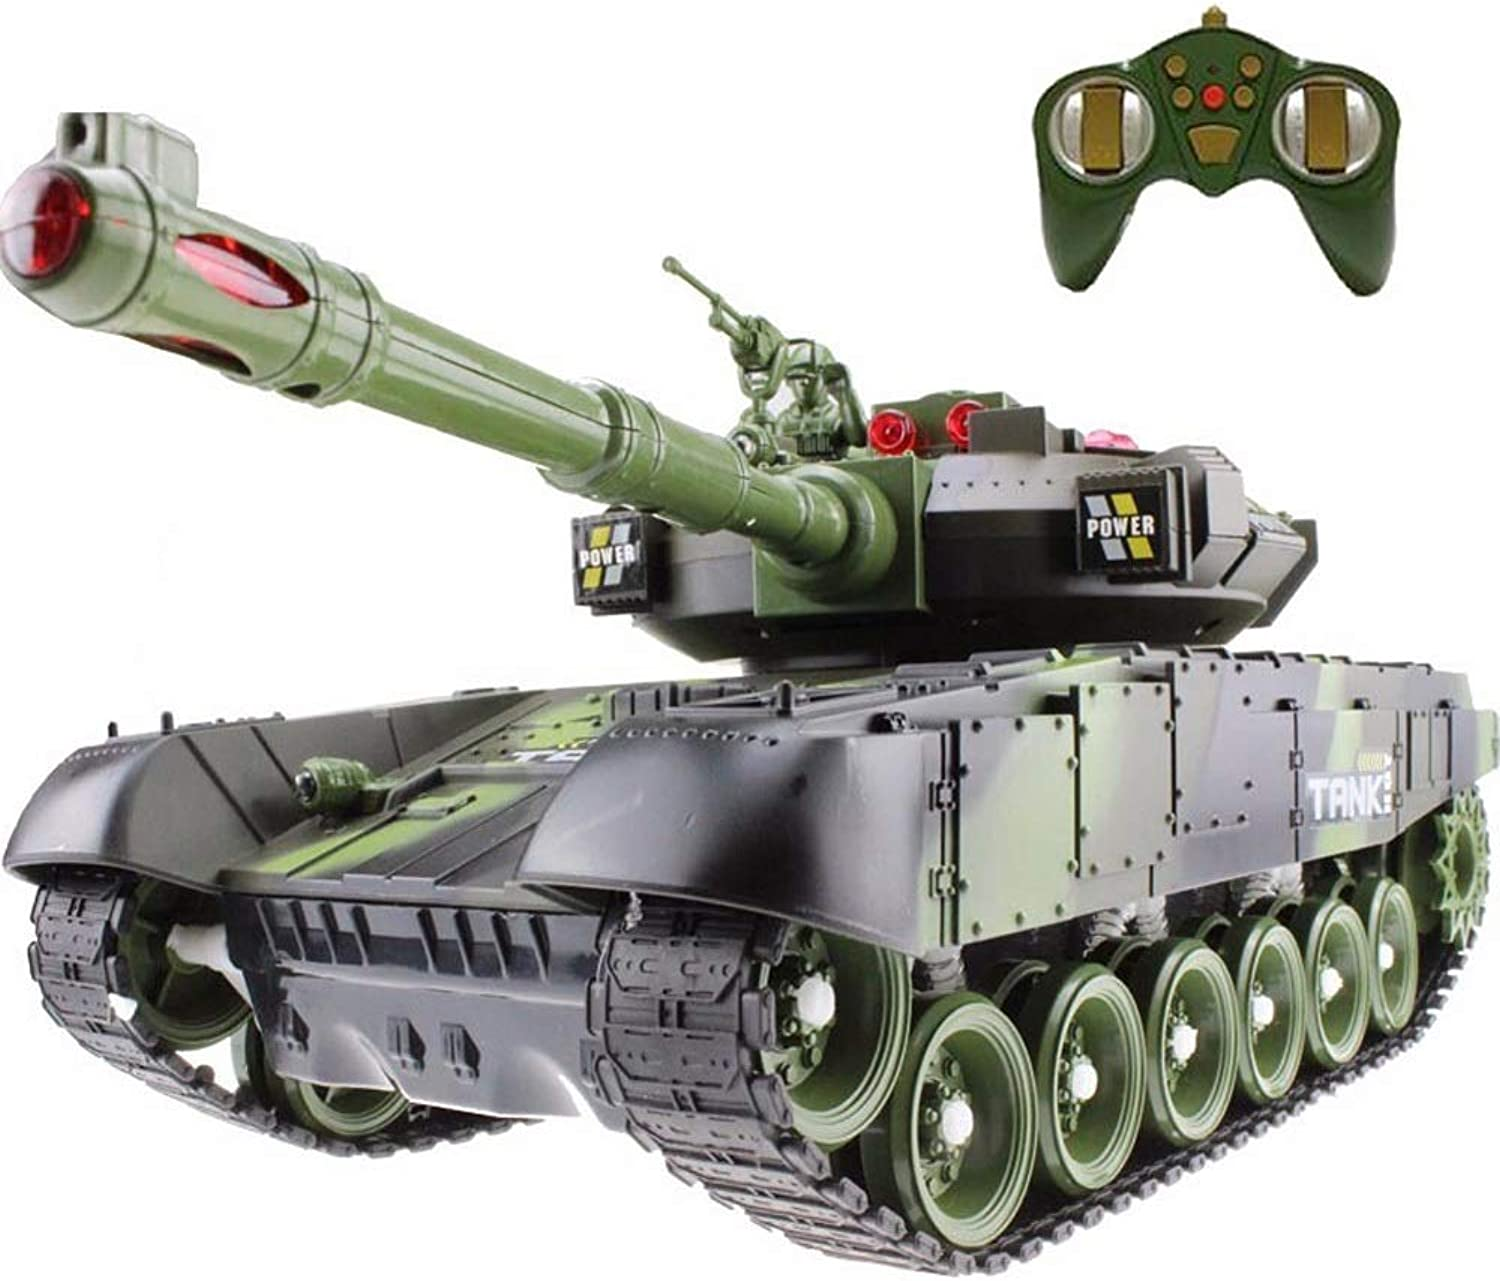 Kikioo Mini RC Tank 2.4GHz With USB Charger Cable Radio Remote Panzer Tank Simulation Army Battle Kit Model Sound, redating Turret And Recoil Action When Cannon Artillery Shoots For Kids Gifts (green)